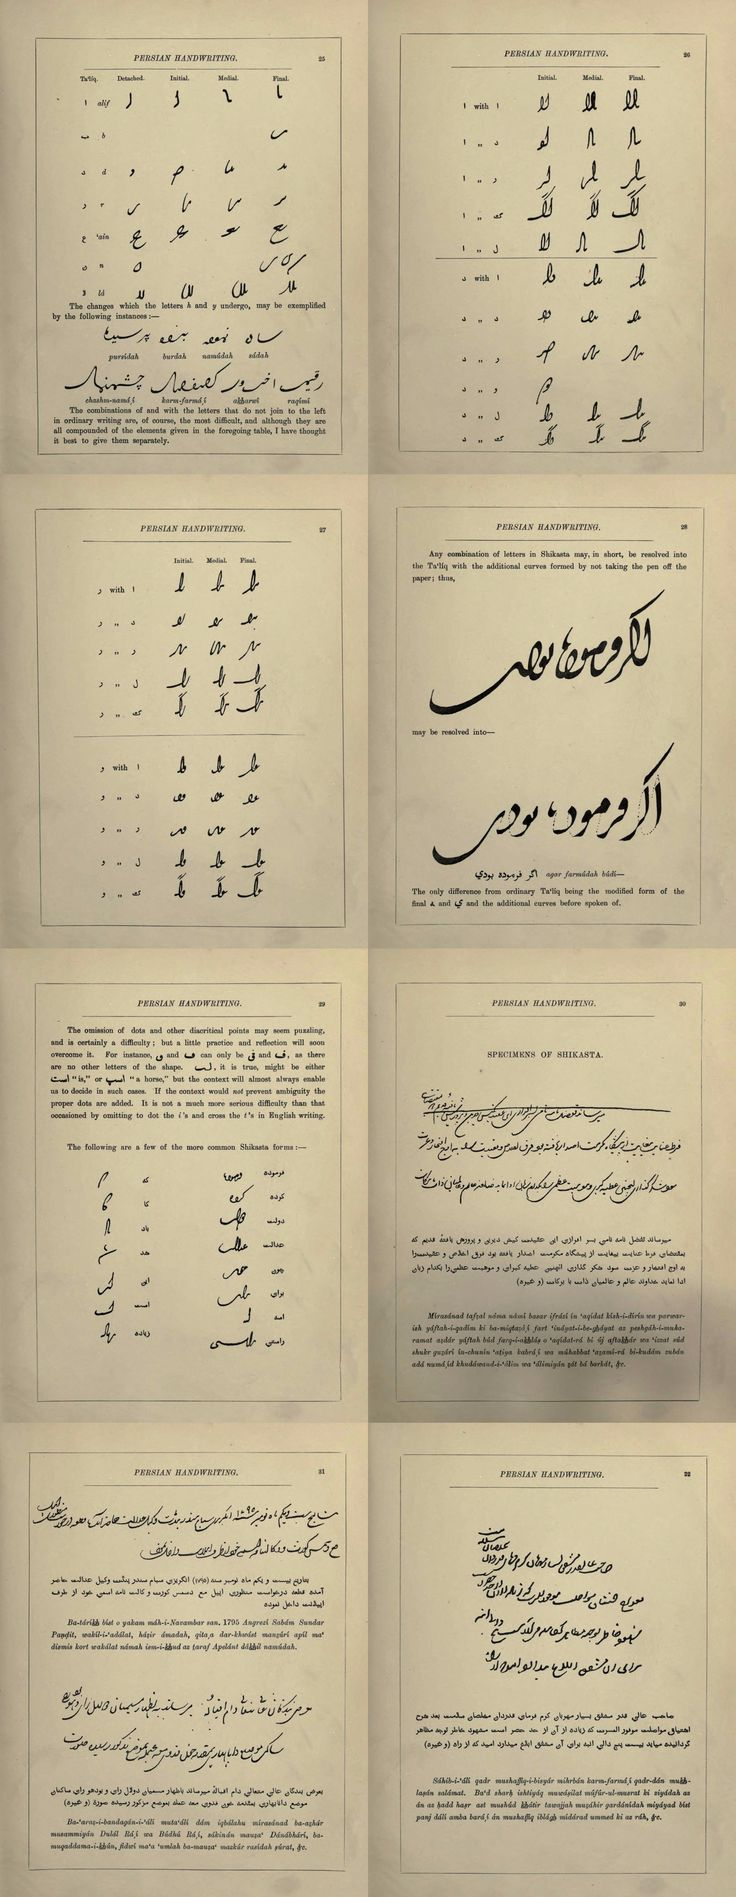 "From ""Oriental penmanship; specimens of Persian handwriting, illustrated with facsimilies from originals in the South Kensington museum"""